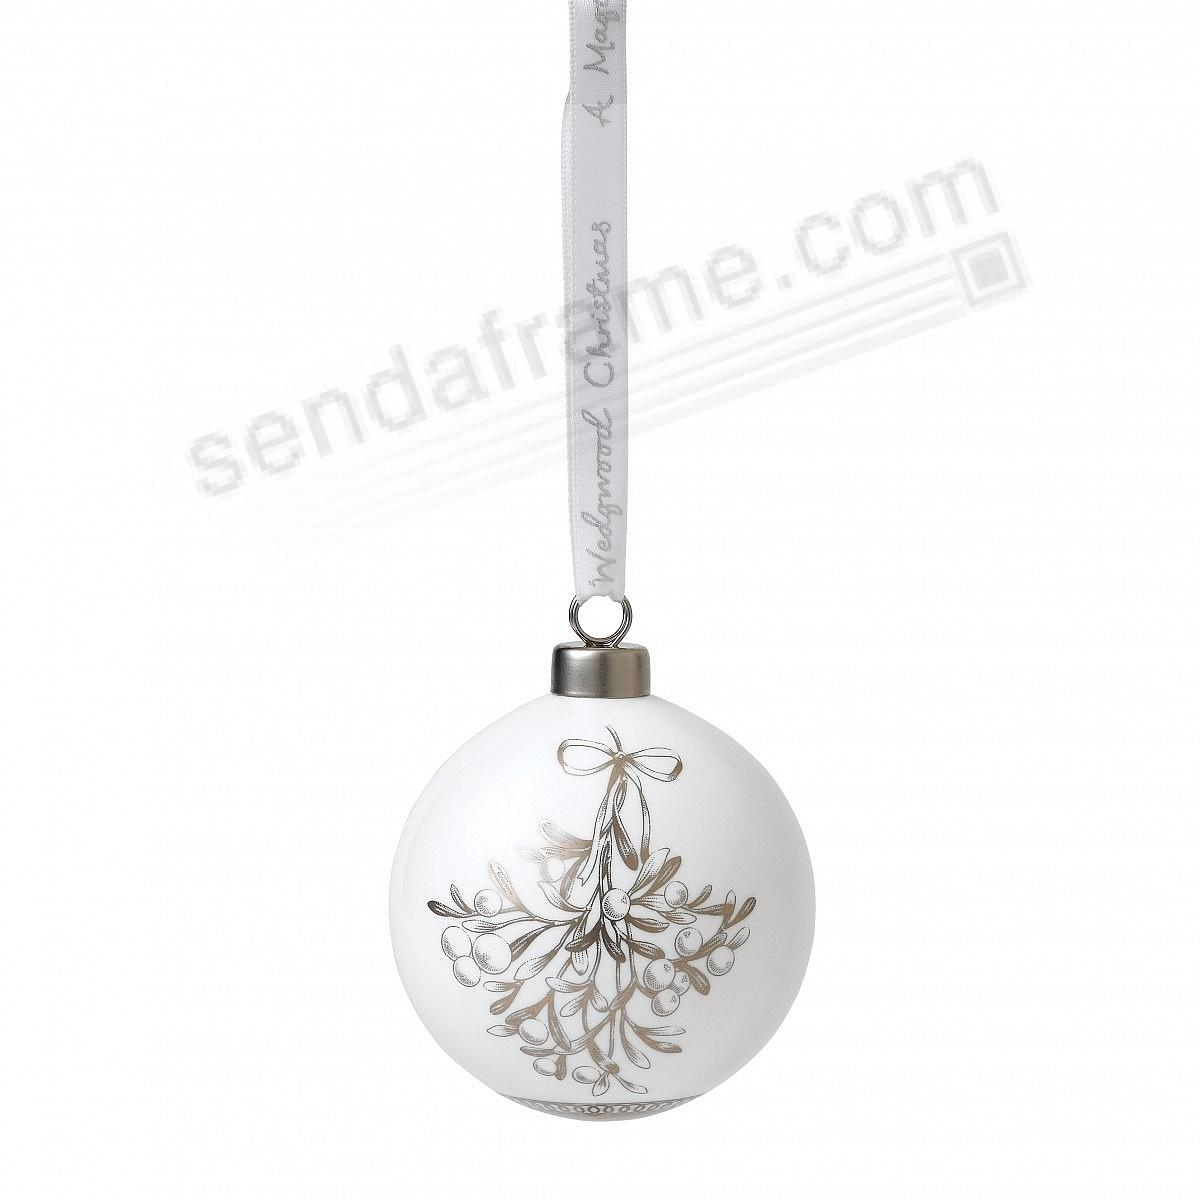 2018 MISTLETOE Ornament by Wedgwood®